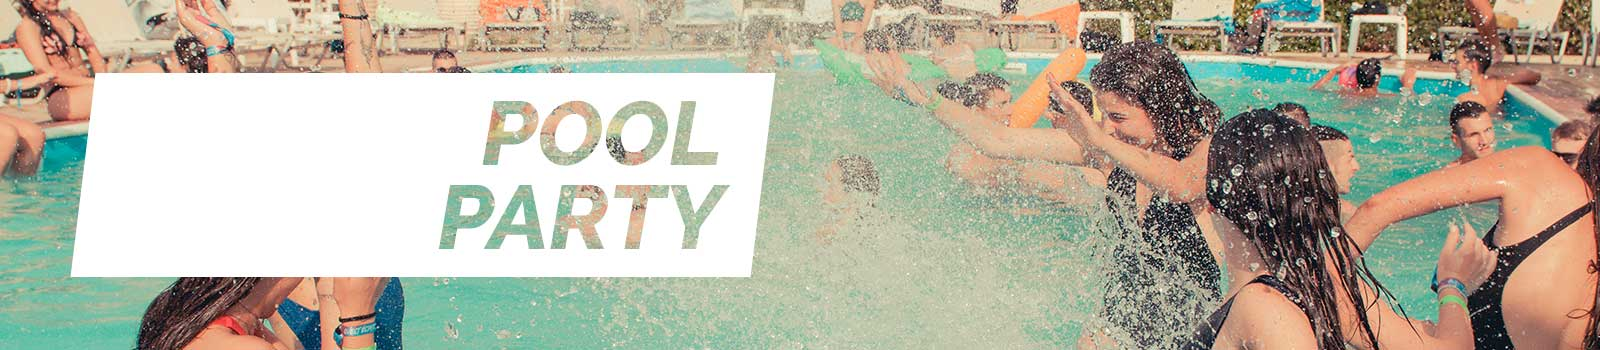 corfu-b6-pool-party